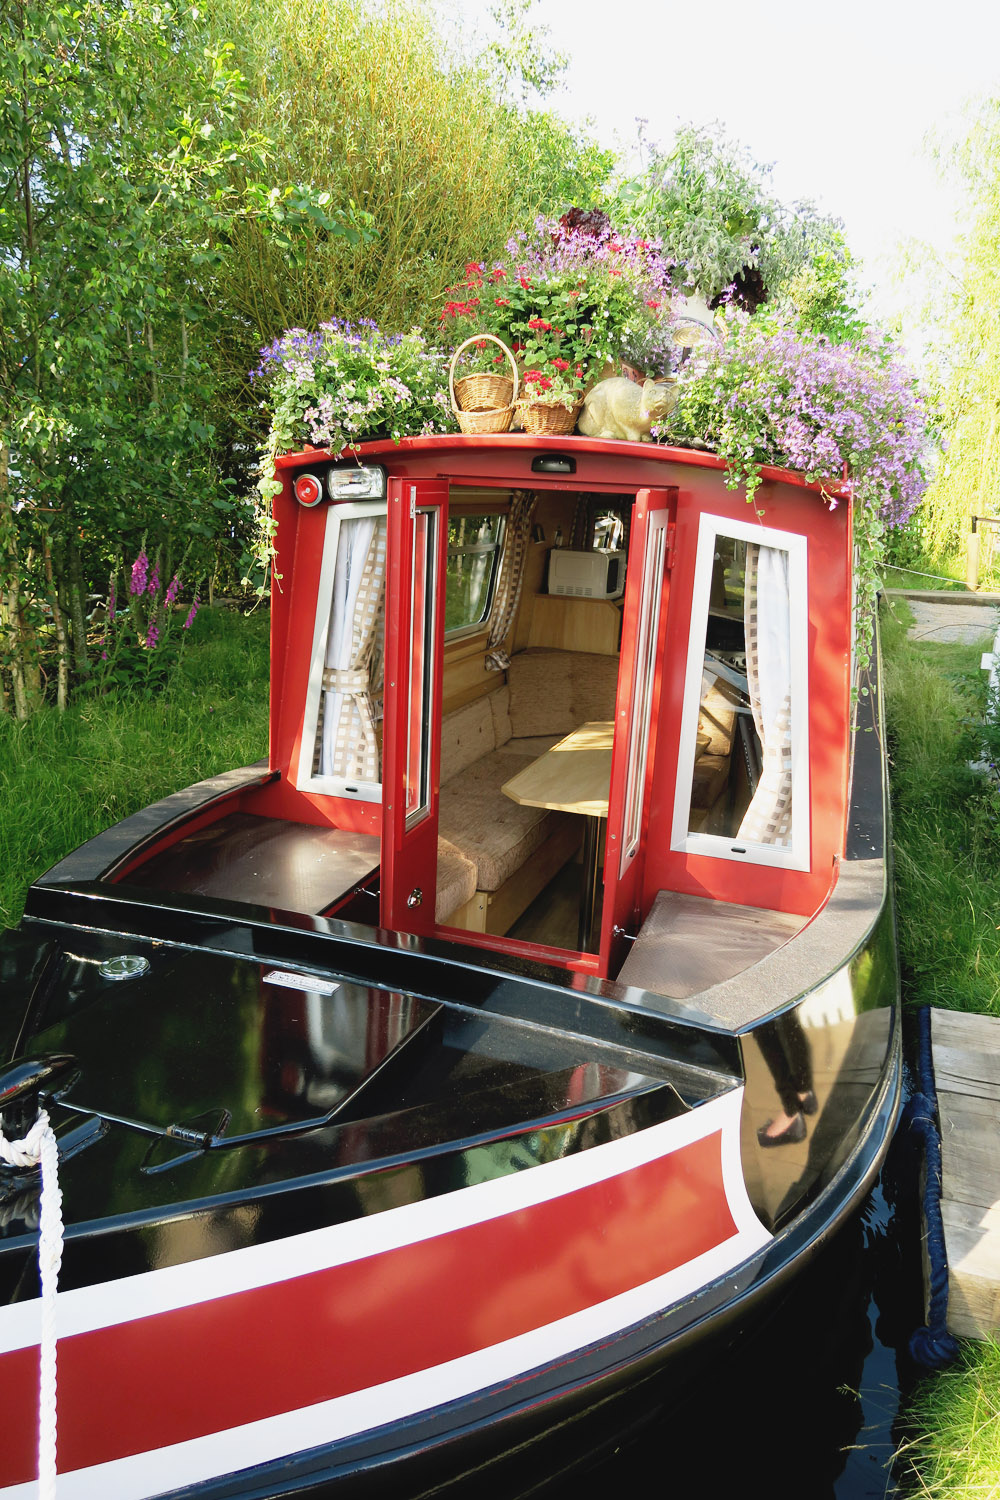 Gardeners World Live 2016 Show Gardens - The Canal Boat